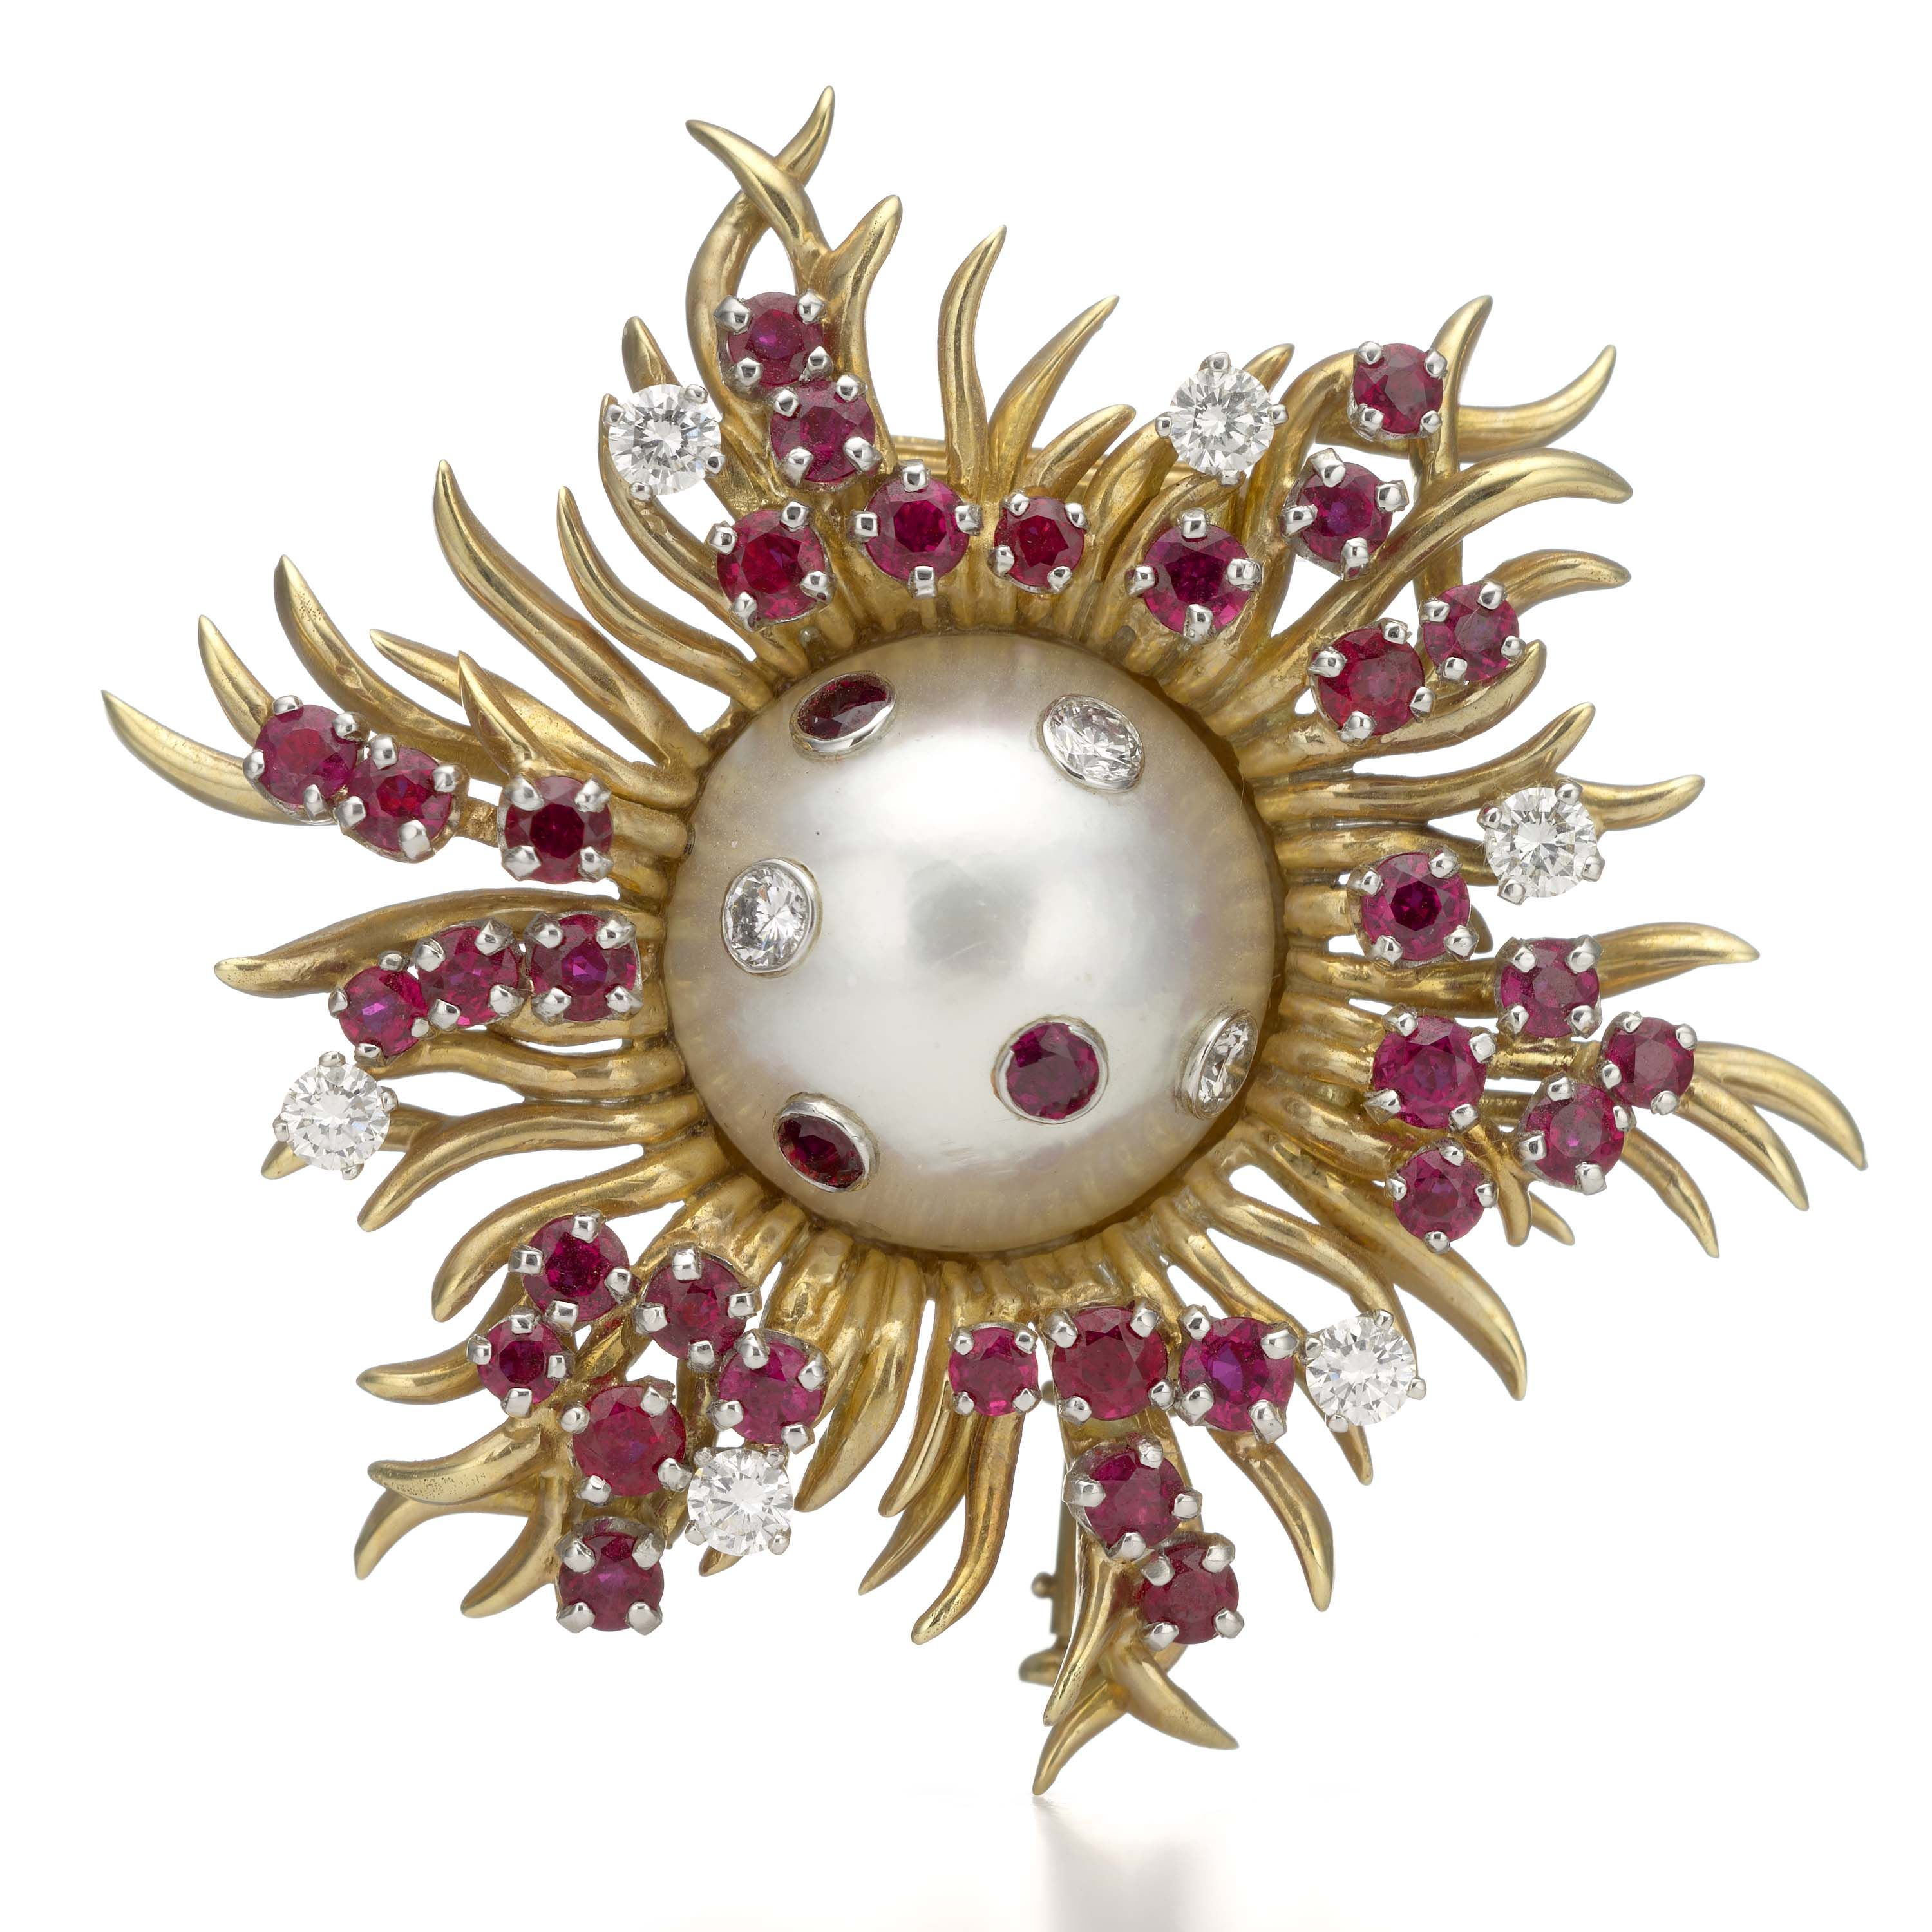 Starburst clip brooch by Schlumberger, Tiffany & Co., American, post–1956; made of gold, diamond, ruby, and mabe pearl.